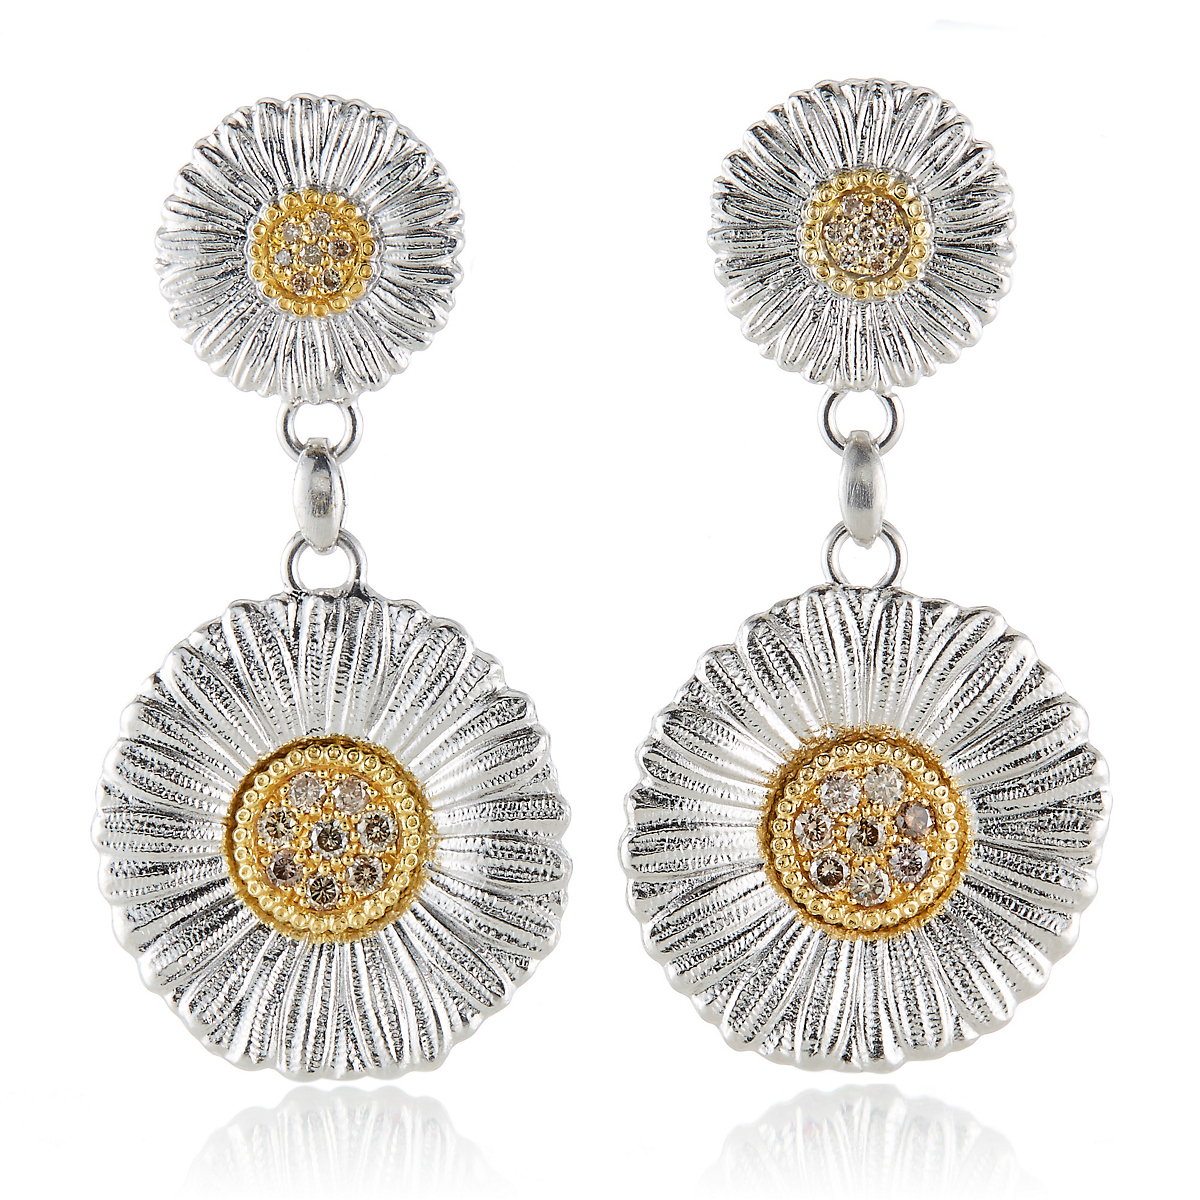 Buccellati Diamond Daisy Blossom Drop Earrings